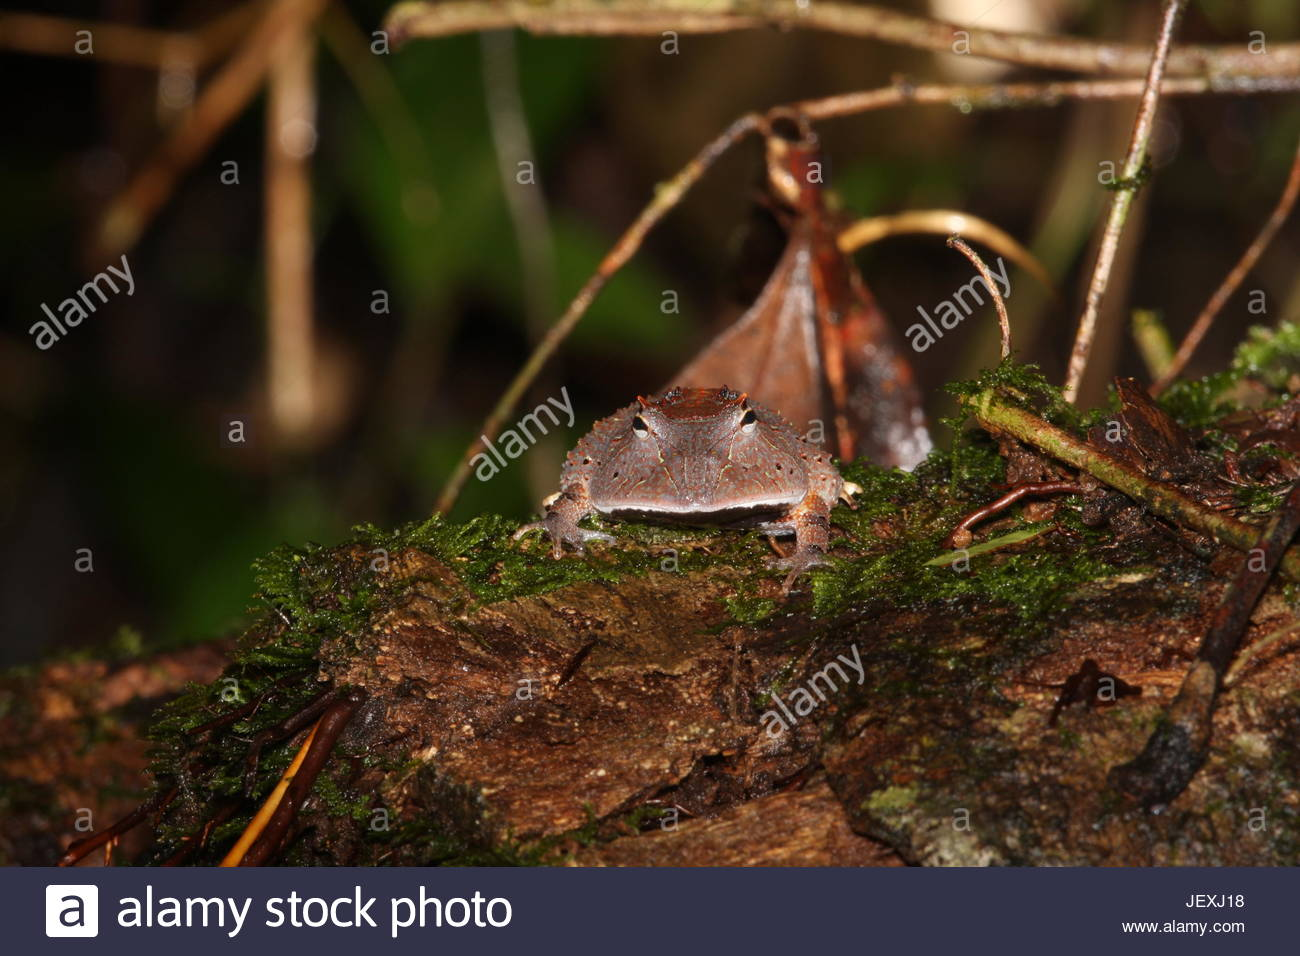 Amazon horned frog, Ceratophrys cornuta. Aggressively territorial and voracious. Will attack anything their size - Stock Image